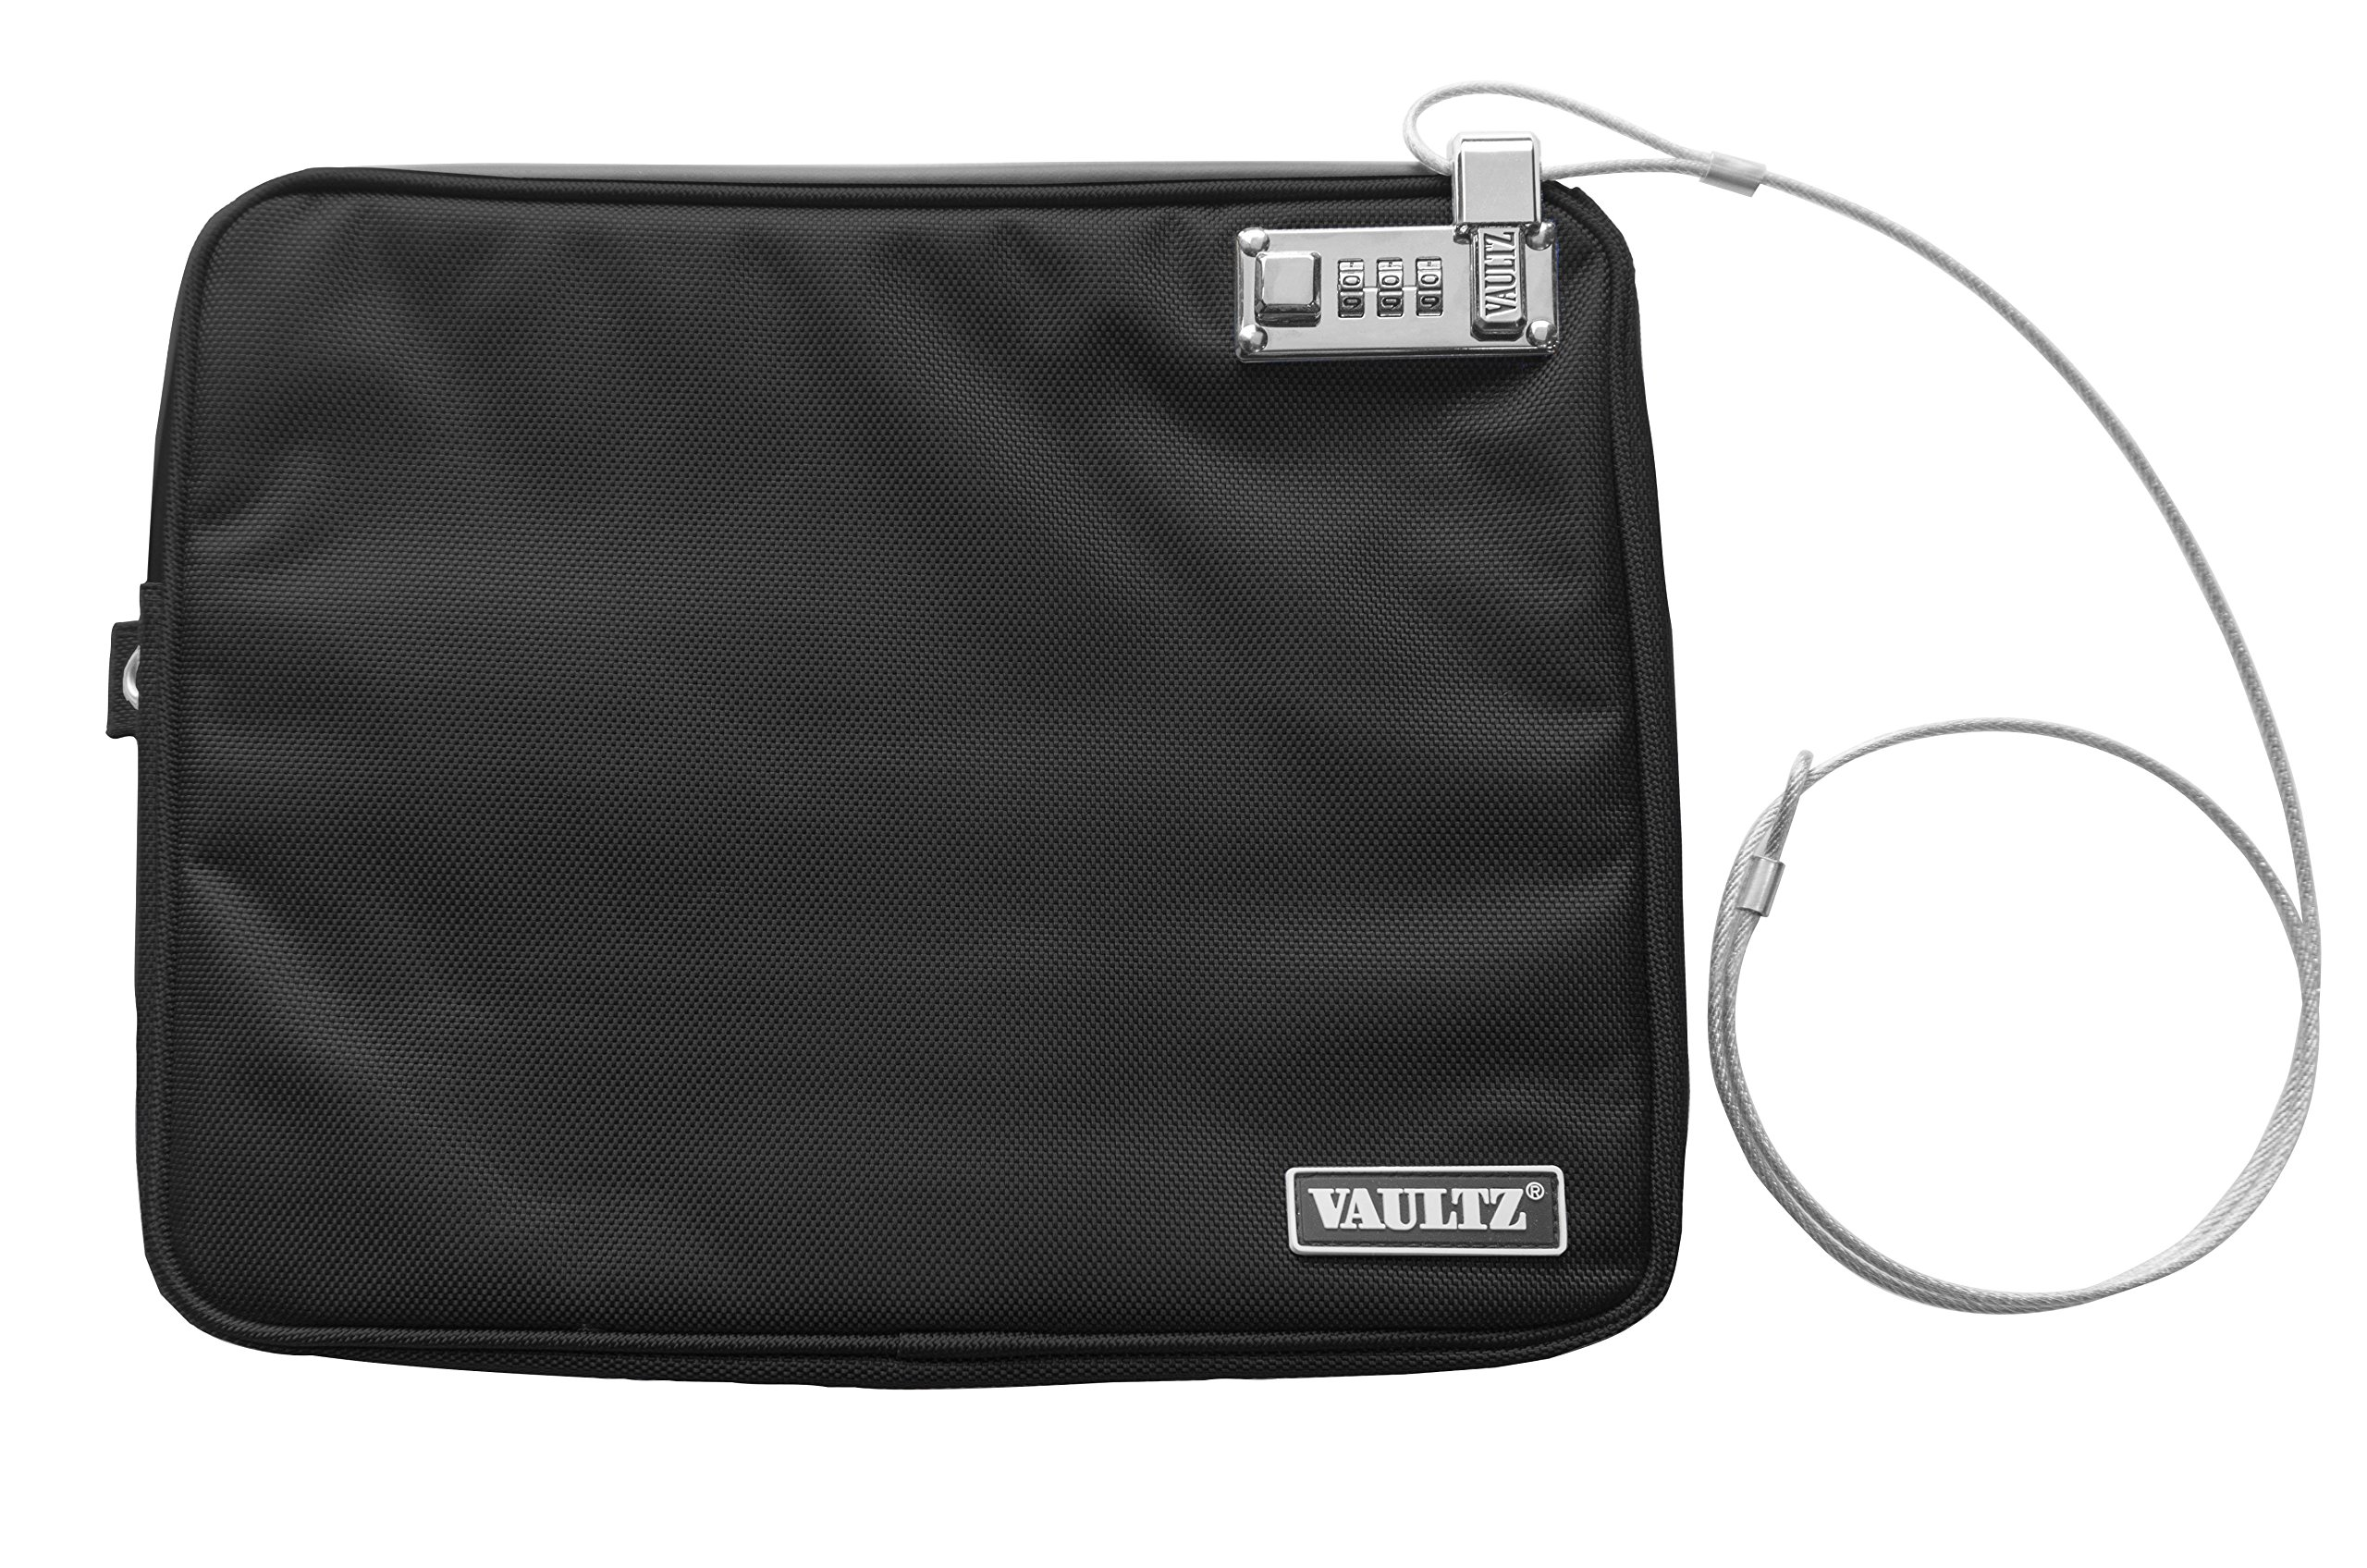 Vaultz Locking Field Gear Pouch with Tether, Extra Large, 12 x 18 Inches, Black (VZ00741) by Vaultz